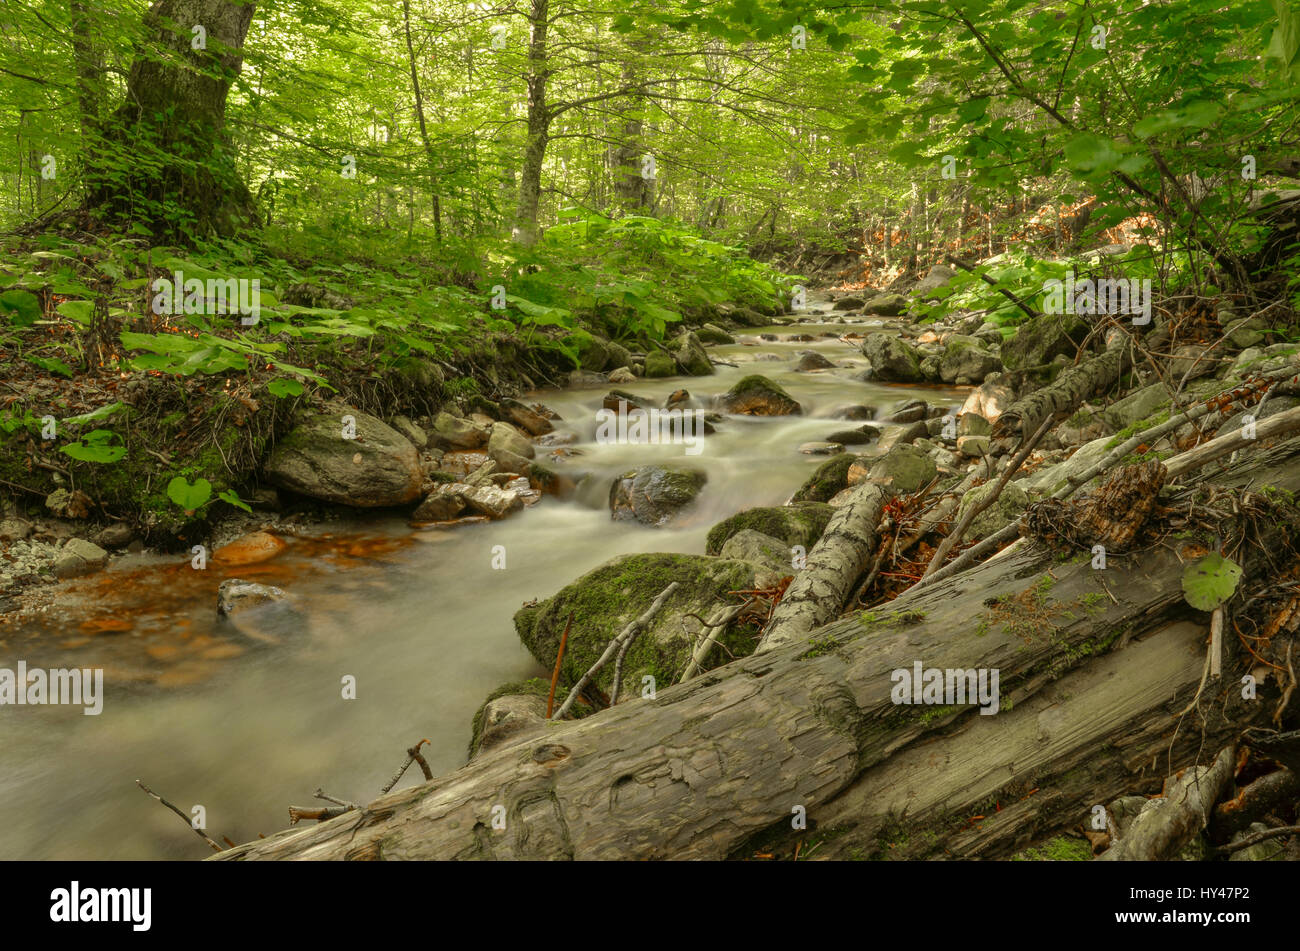 Wild River - Nature – Relaxing Background, Mariovo region, Macedonia - Stock Image